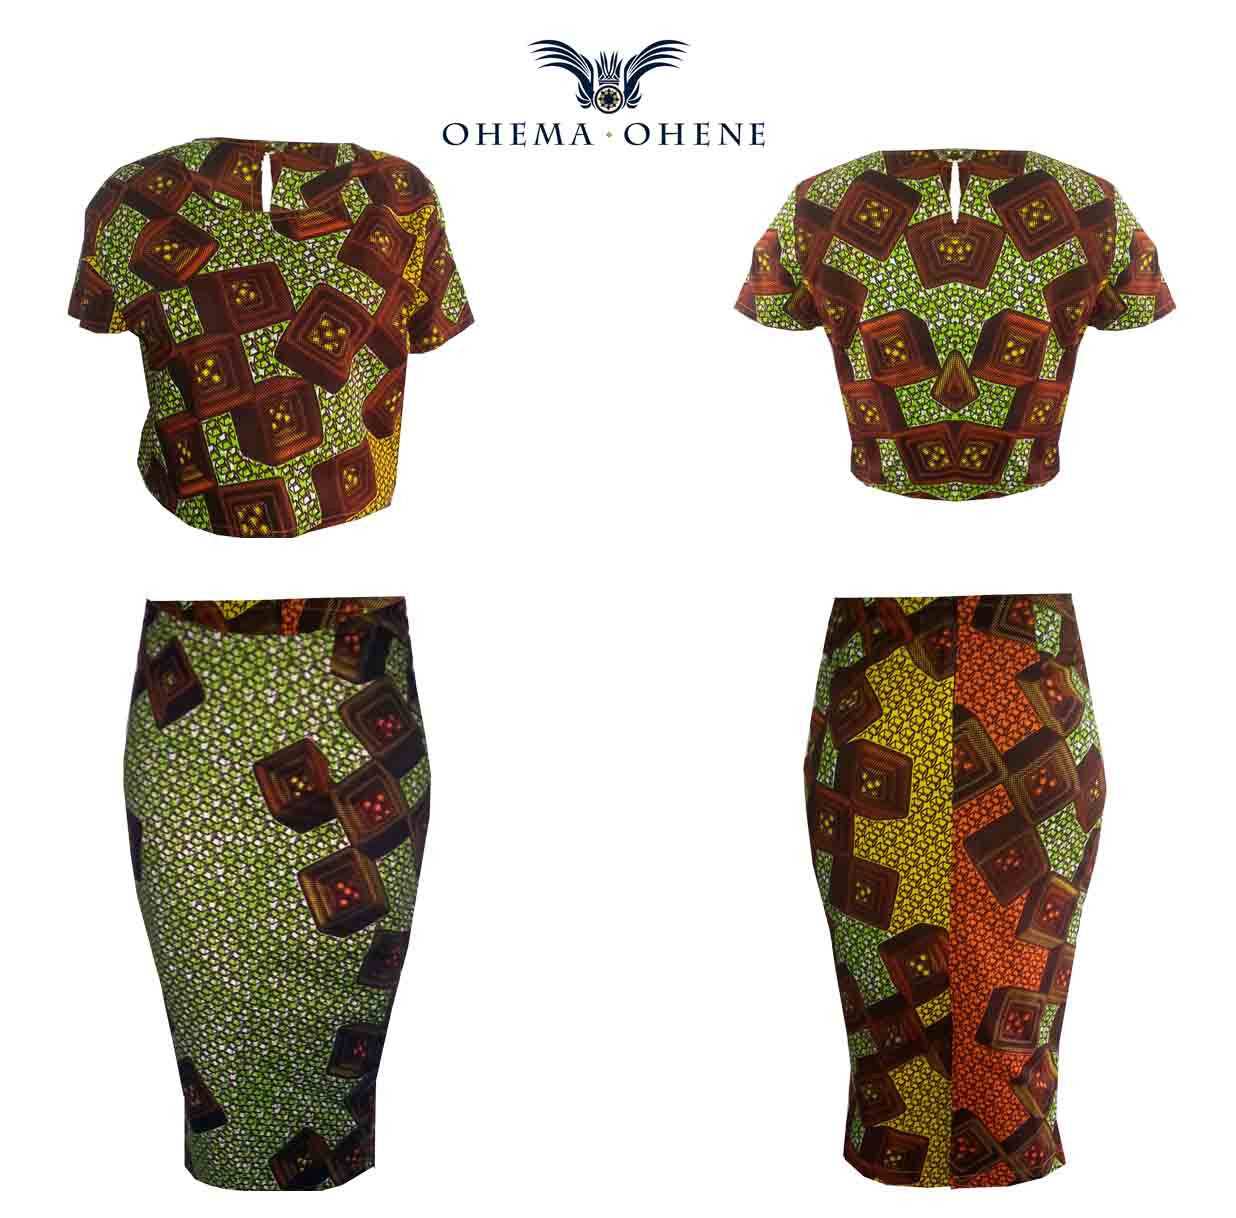 Two Piece African Print Crop Top & Midi Length Skirt -Texx - OHEMA OHENE AFRICAN INSPIRED FASHION  - 3